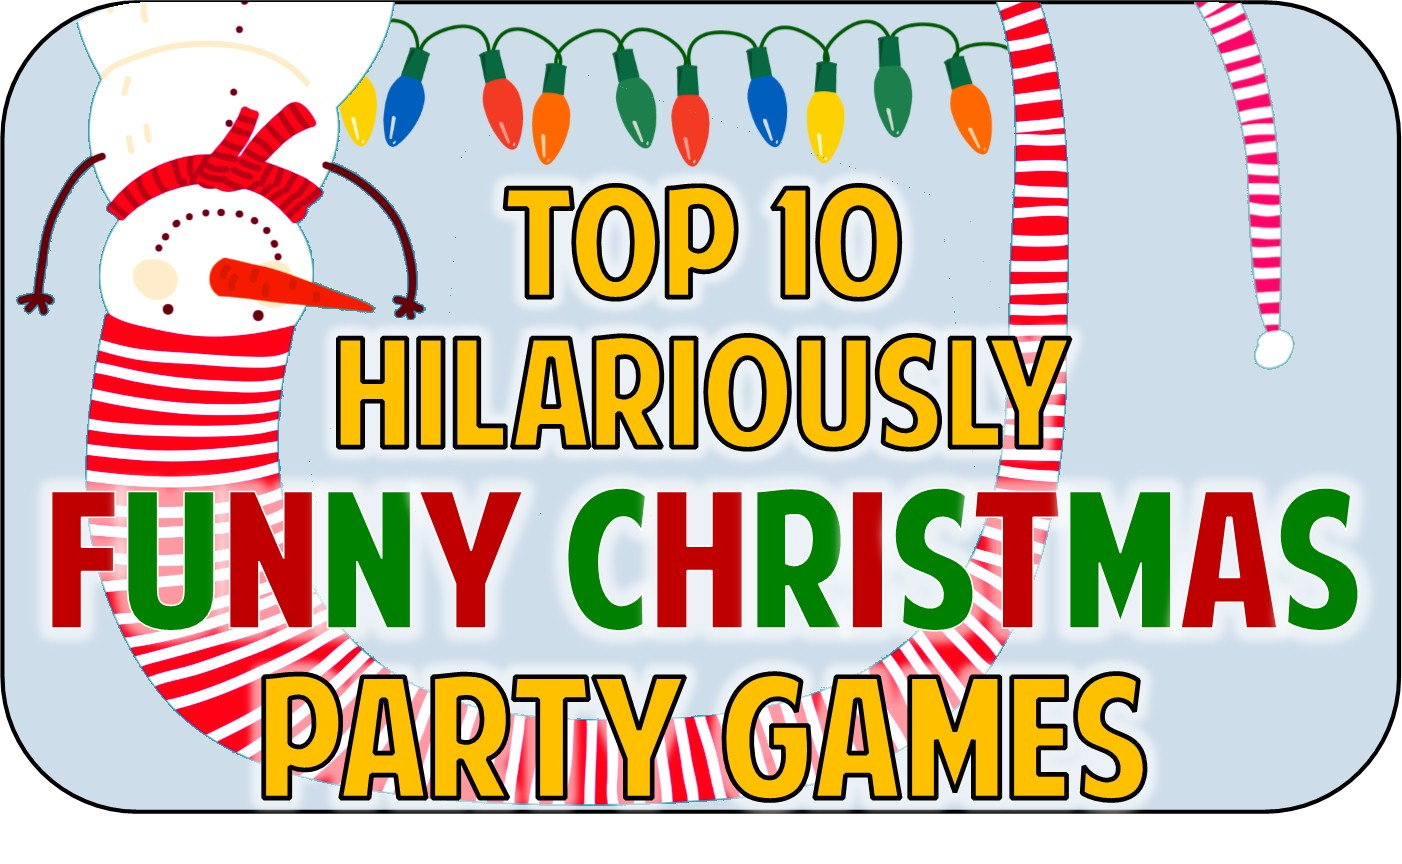 Christmas Party Office Games - Holiday Office Party Games Free Printable